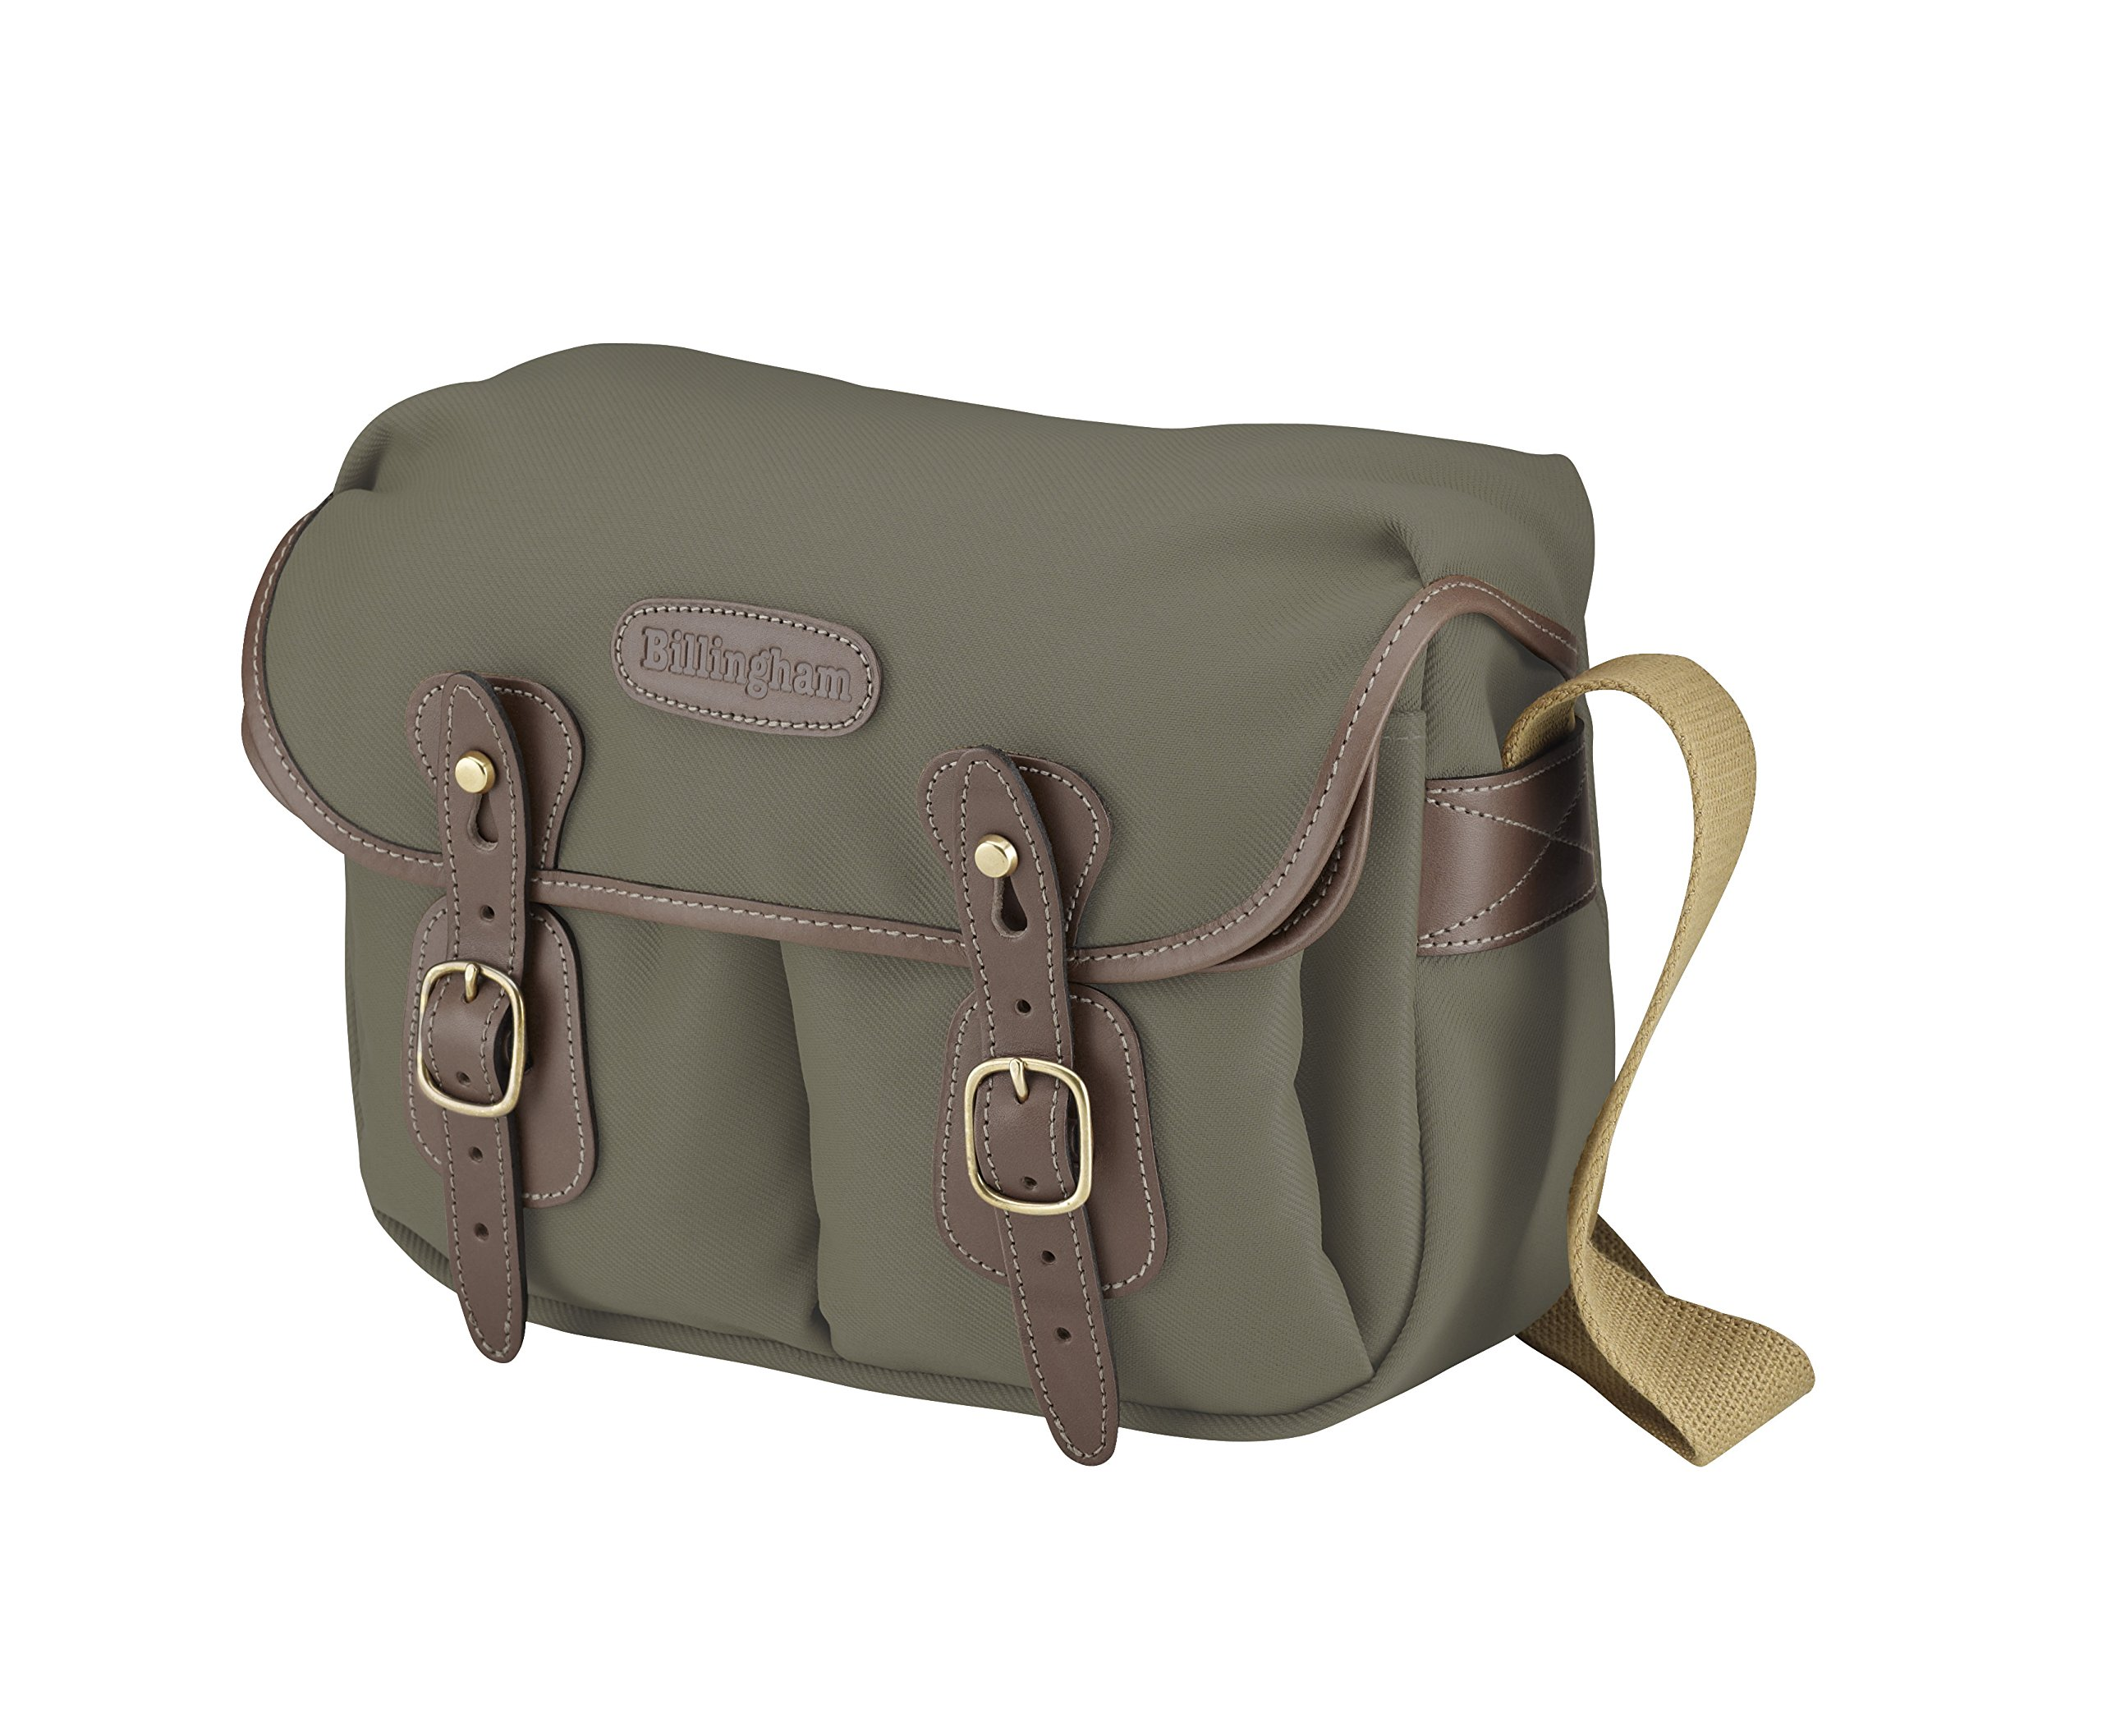 Billingham Hadley Small Shoulder Bag for Digital/Photo SLR Body with 2 Lenses, or 1 Lens and Flash + Accessories, Sage with Chocolate Leather Trim